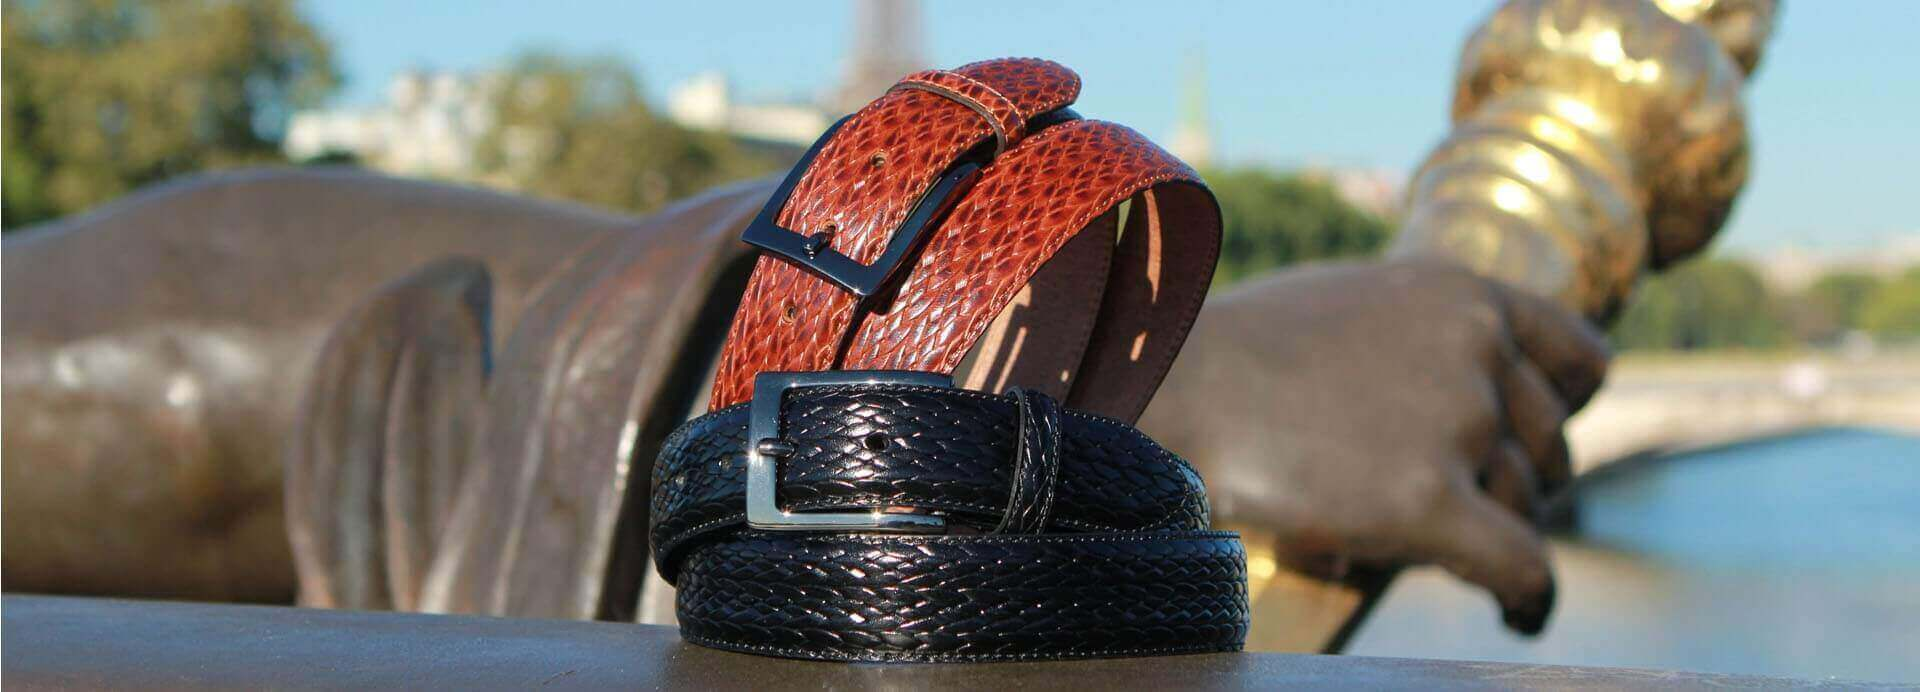 Our braided style leather belts